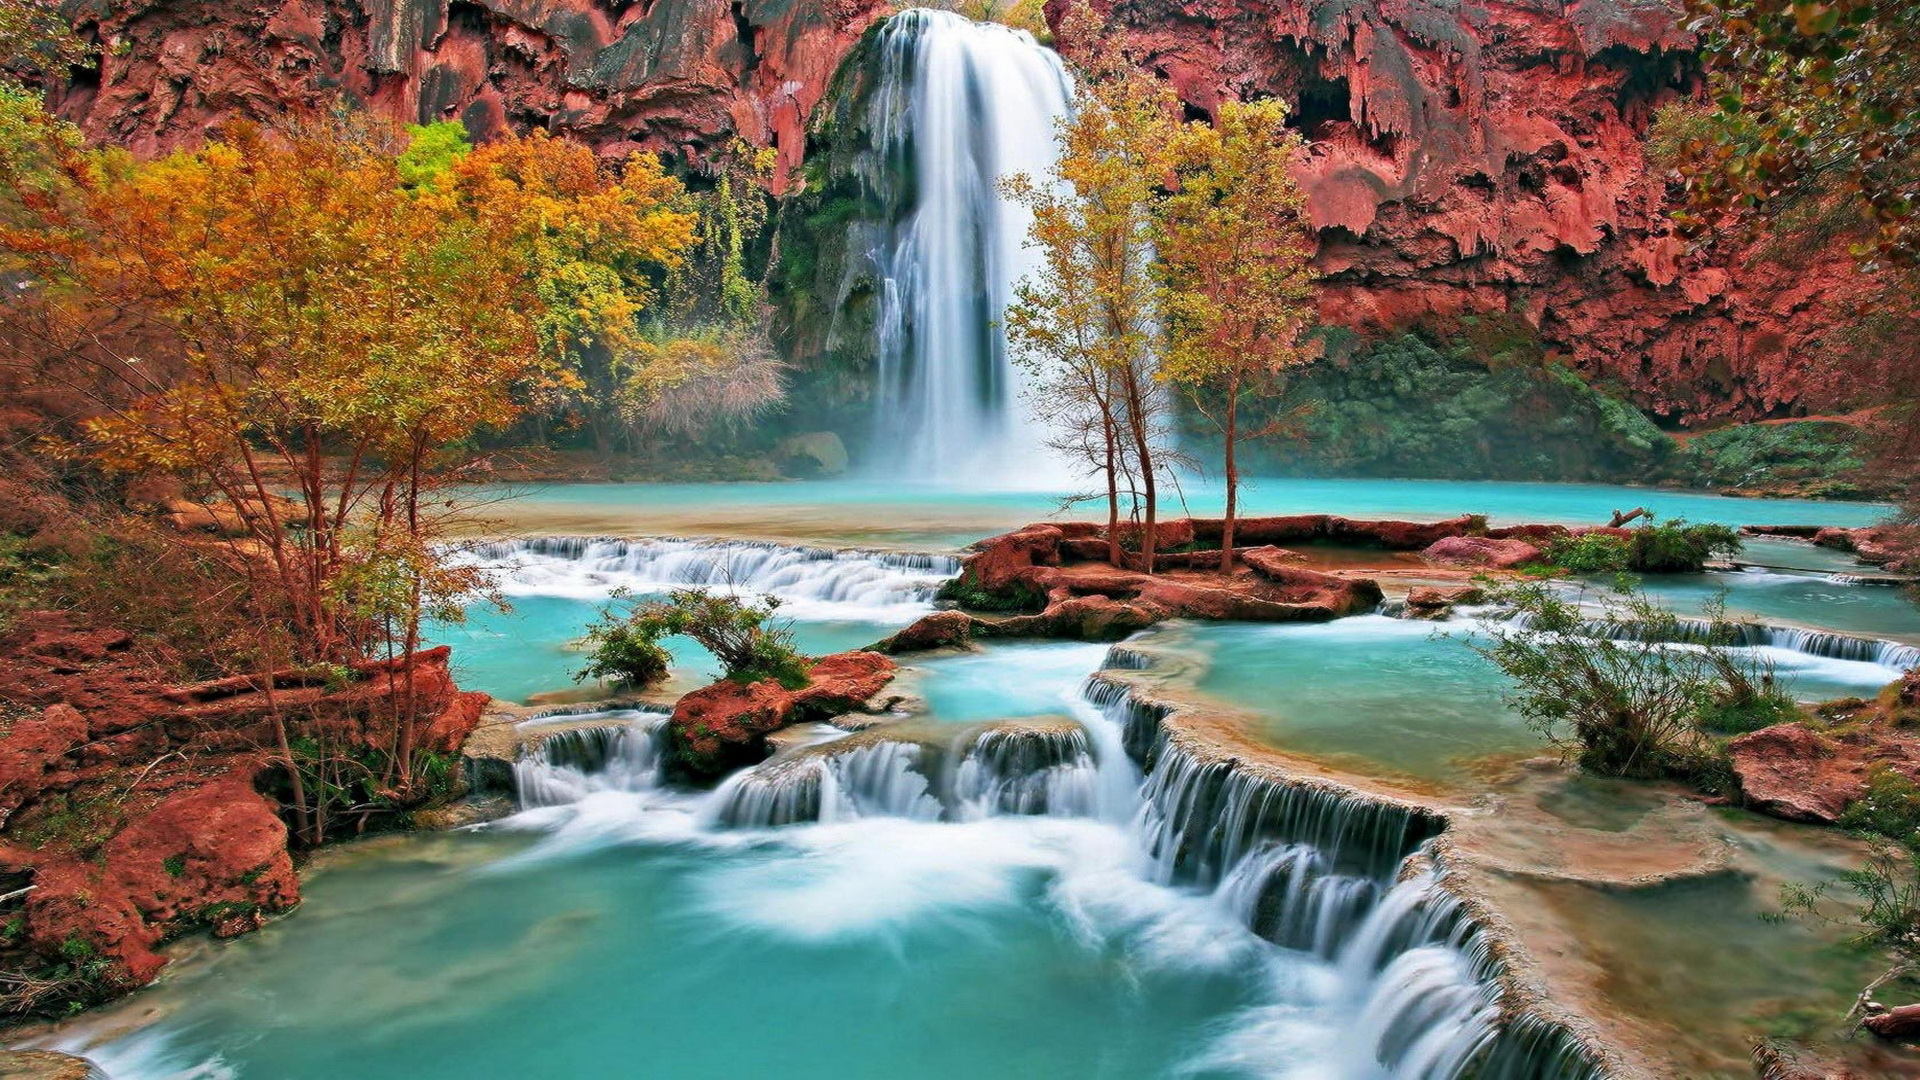 Beautiful Autumn Waterfall Wallpaper Hd 1080p Desktop Fond Ecran 1920x1080